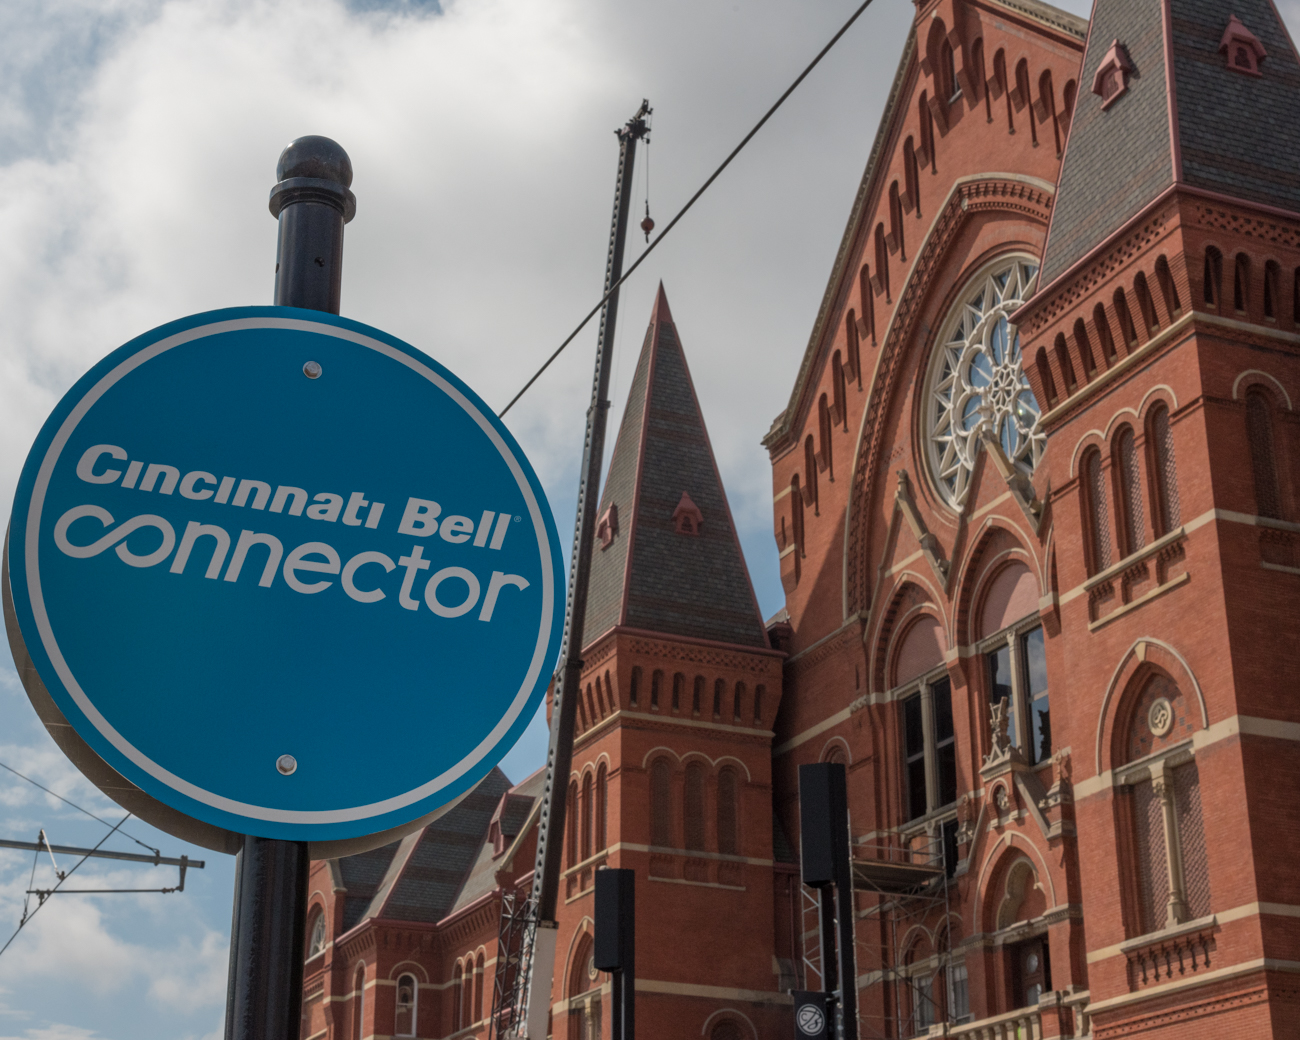 The Cincinnati Bell Connector opened on Friday, Sept. 9. / RATES: $1 for 2 hours and $2 to ride all day / HOURS: M-Th, 6:30 a.m. to midnight; Fri, 6:30 a.m. to 1 a.m.; Sat, 8 a.m. to 1 a.m.; Sun, 9 a.m. to 11 p.m. // IMAGE: Phil Armstrong, Cincinnati Refined